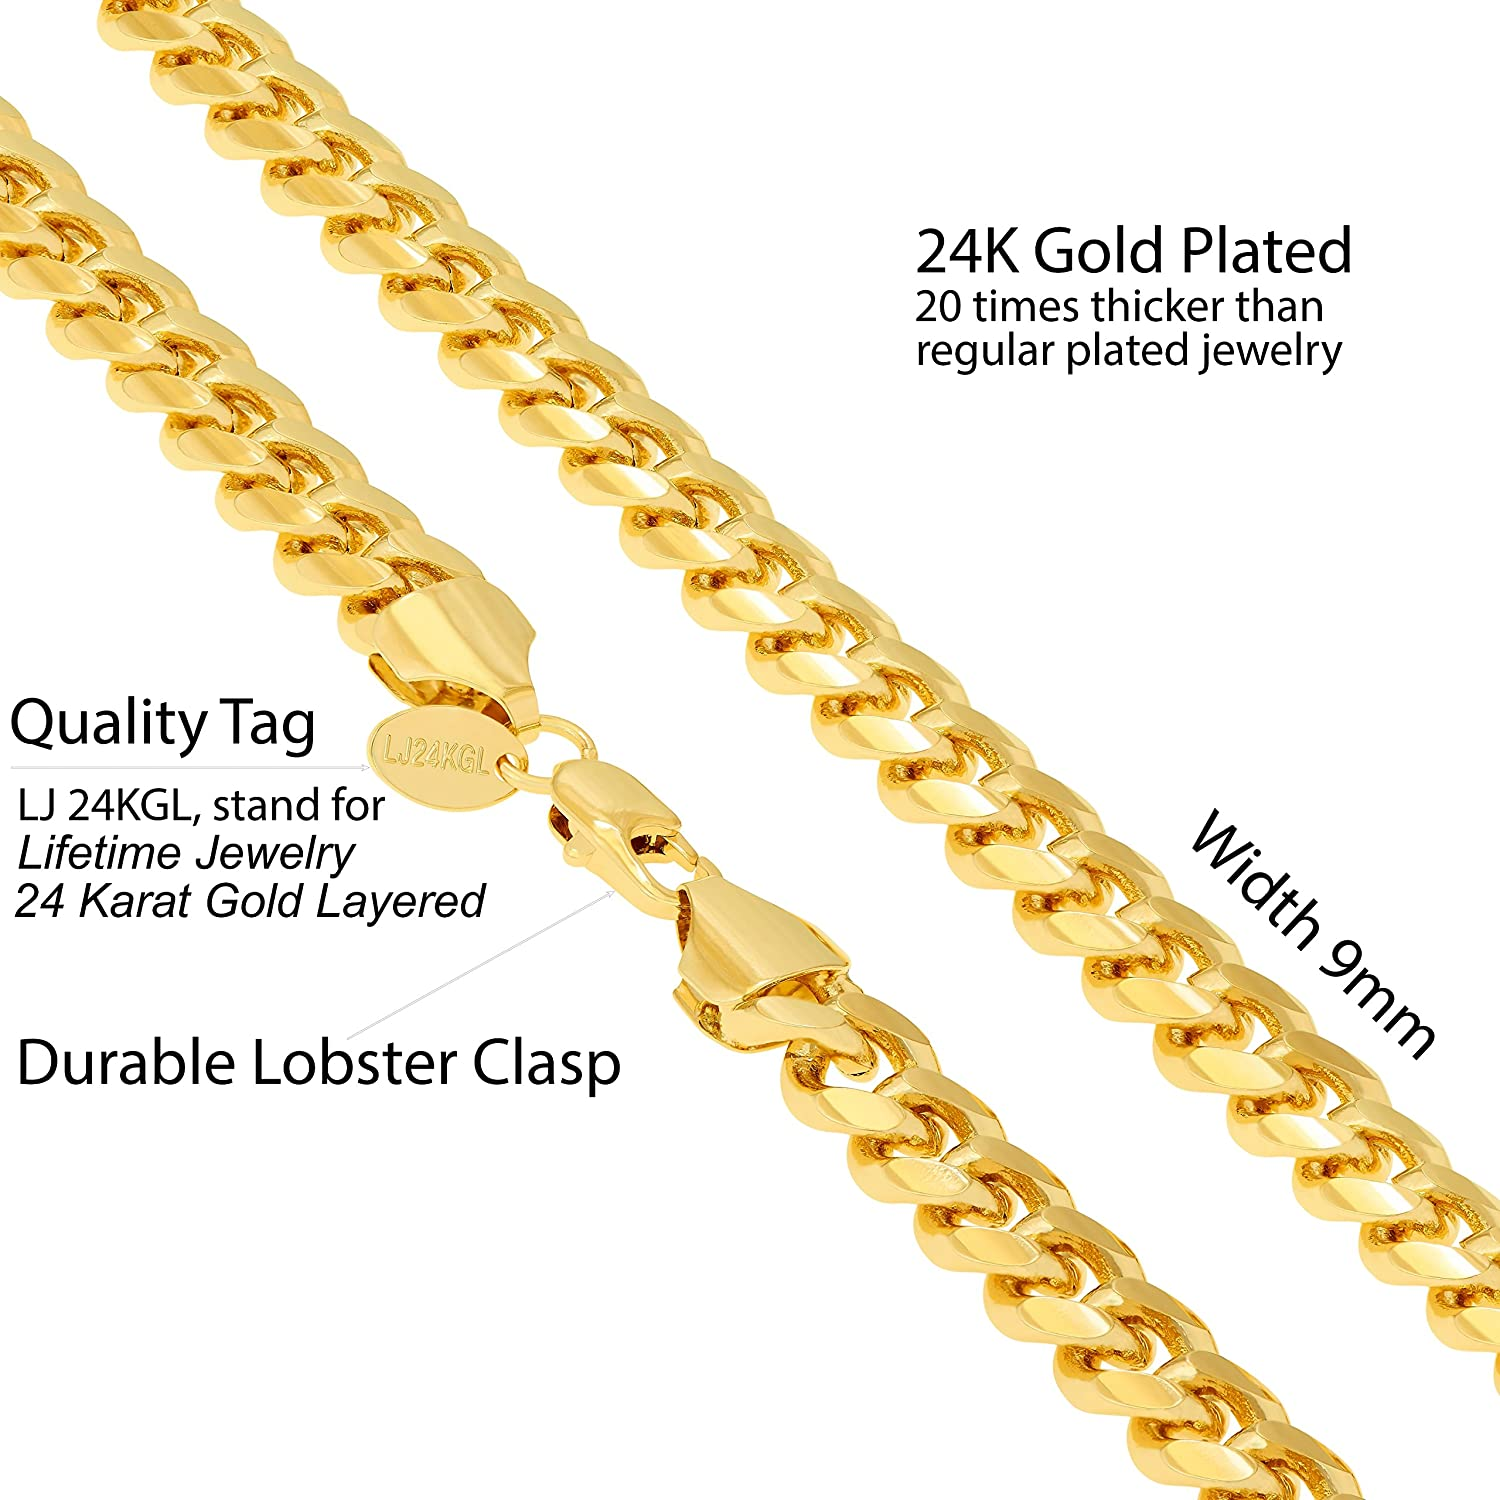 40ee8edac4a0b Lifetime Jewelry Necklace Chain [ 9mm Cuban Link Chain ] up to 20X More 24k  Plating Than Other Gold Chains - Durable Necklaces for Men with Lifetime ...